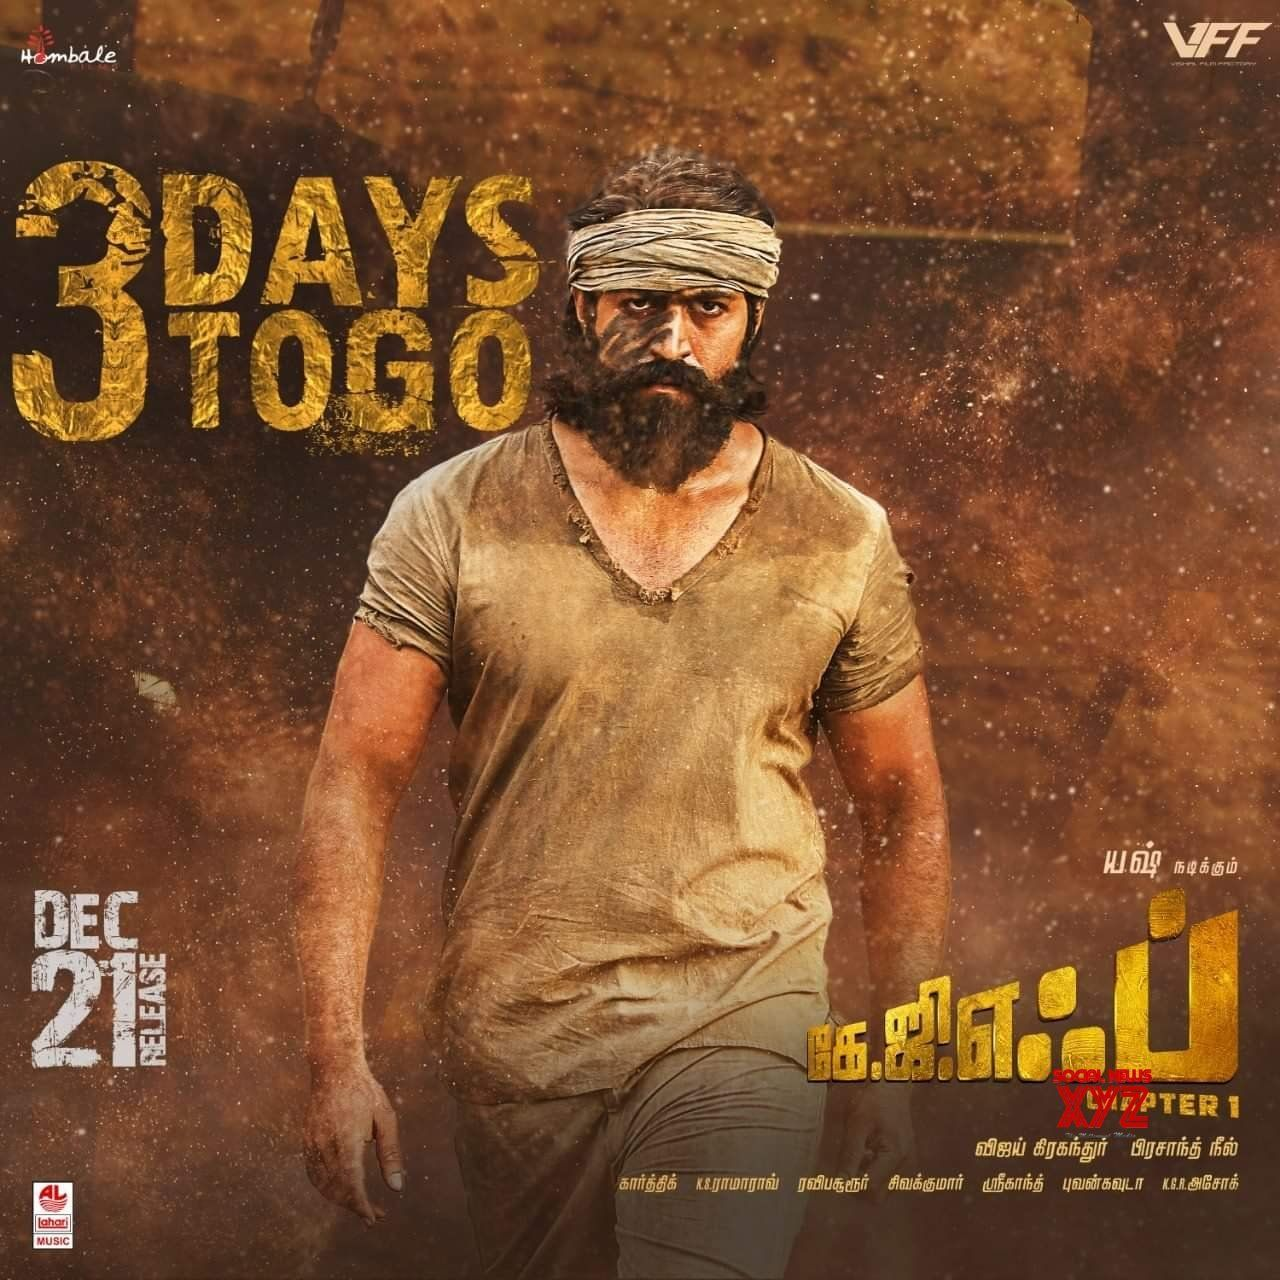 Kgf Movie 3 Days To Go Posters Social News Xyz In 2020 Kannada Movies Download Telugu Movies Download Kannada Movies